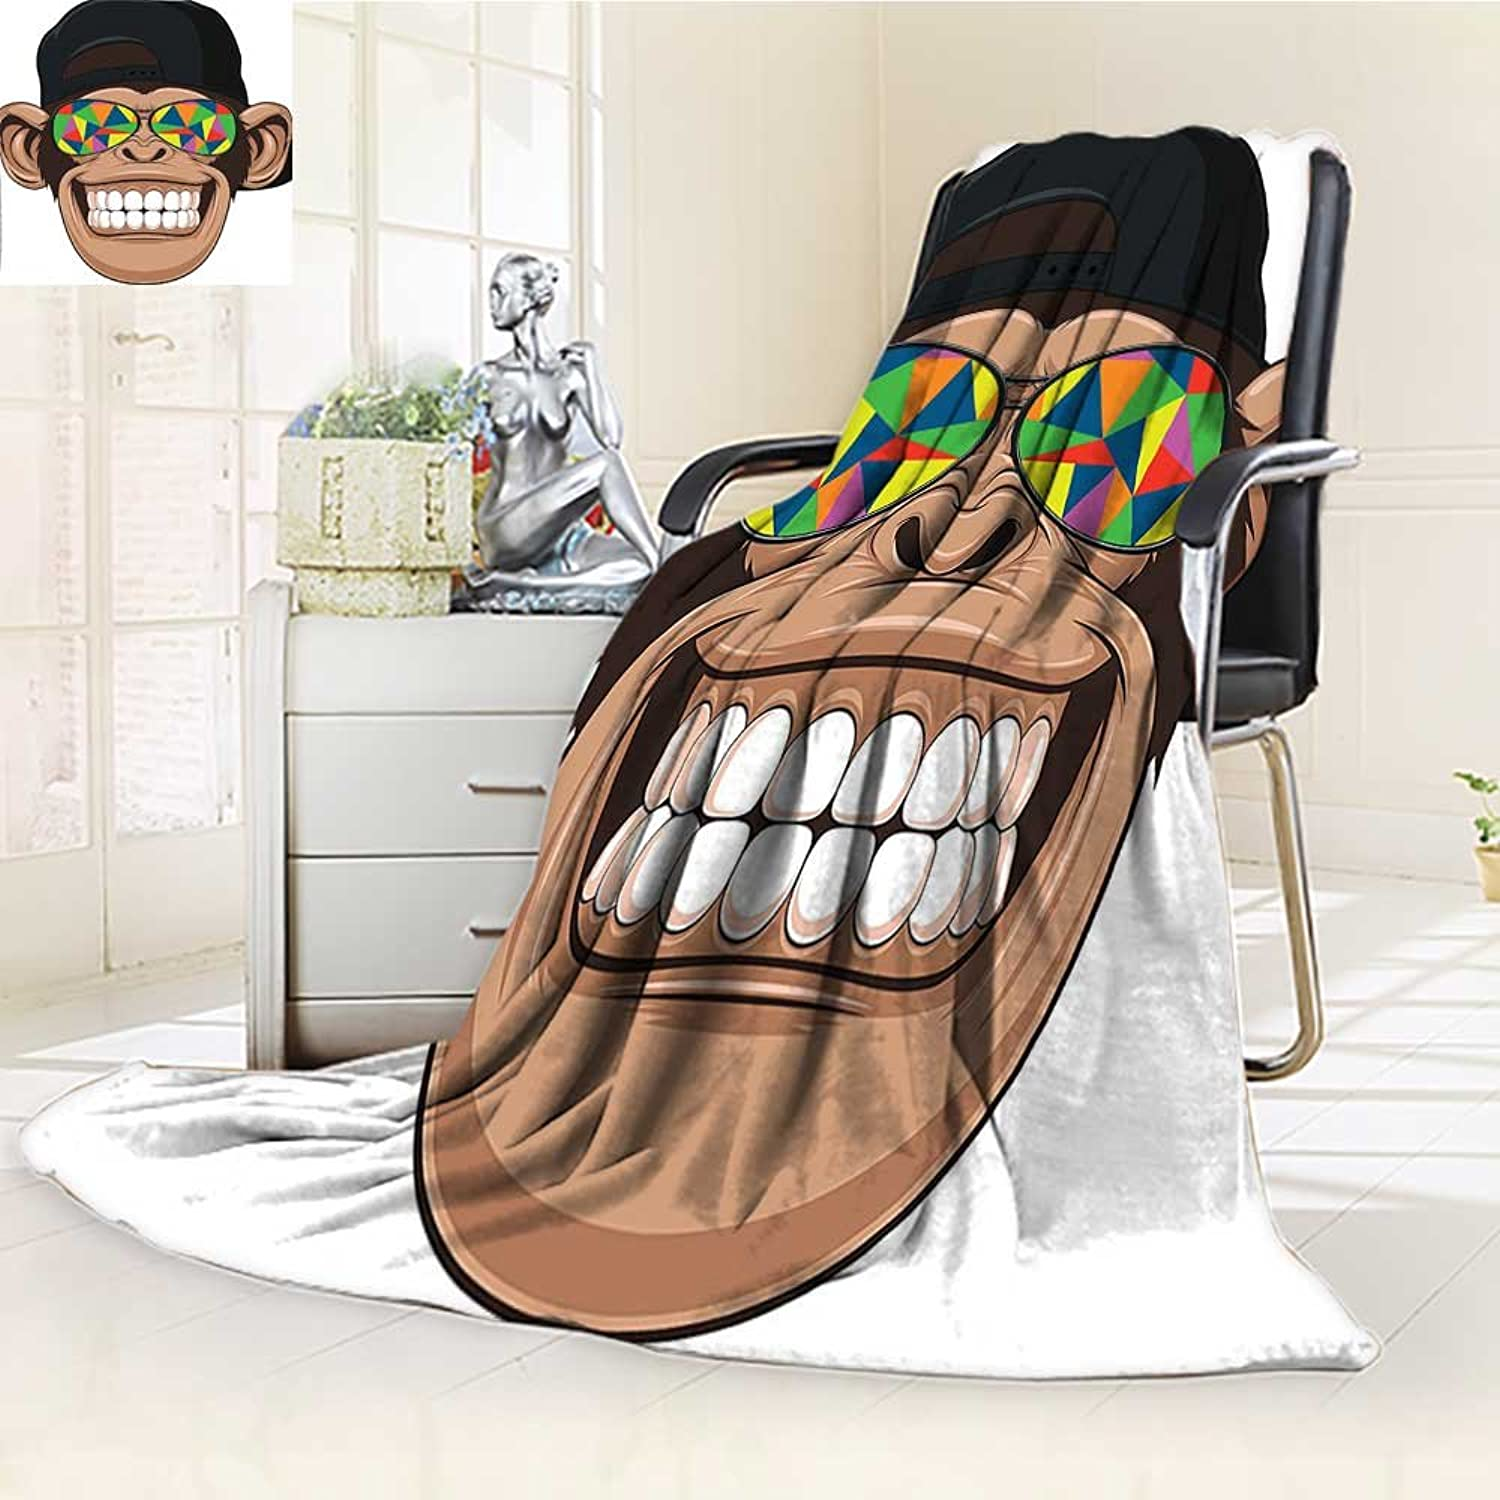 YOYI-HOME Fashion Designs Warm Duplex Printed Blanket Cartoon Fun Hipster Monkey with colorful Sunglasses and Hat Rapper Hippie Ape Art Graphic Multi Sofa,Air-Conditioner Room  W59 x H39.5